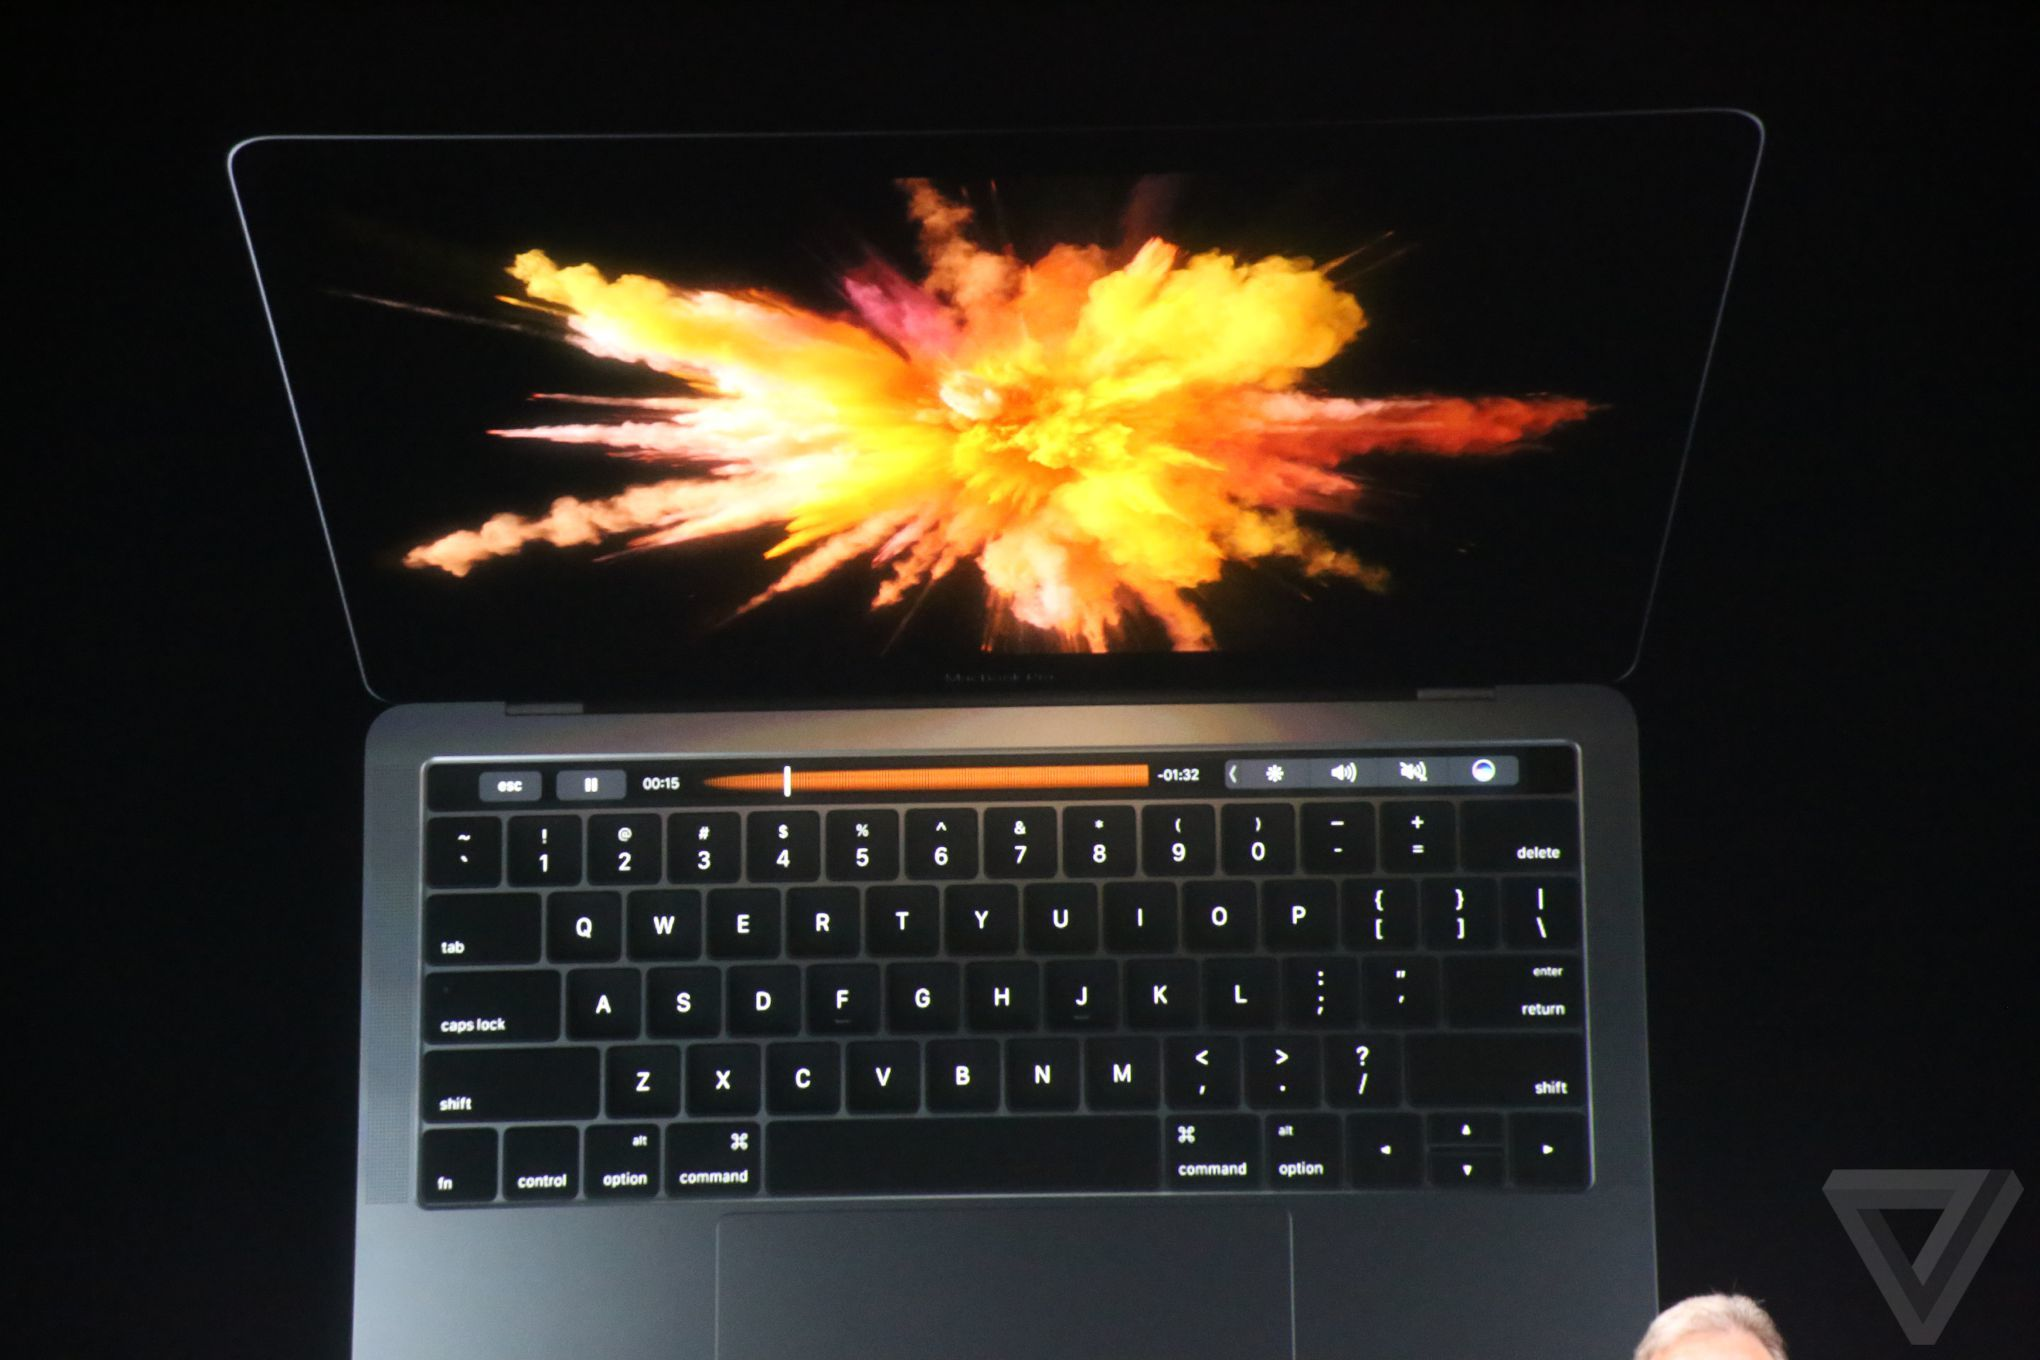 apple-macbook-event-20161027-8025